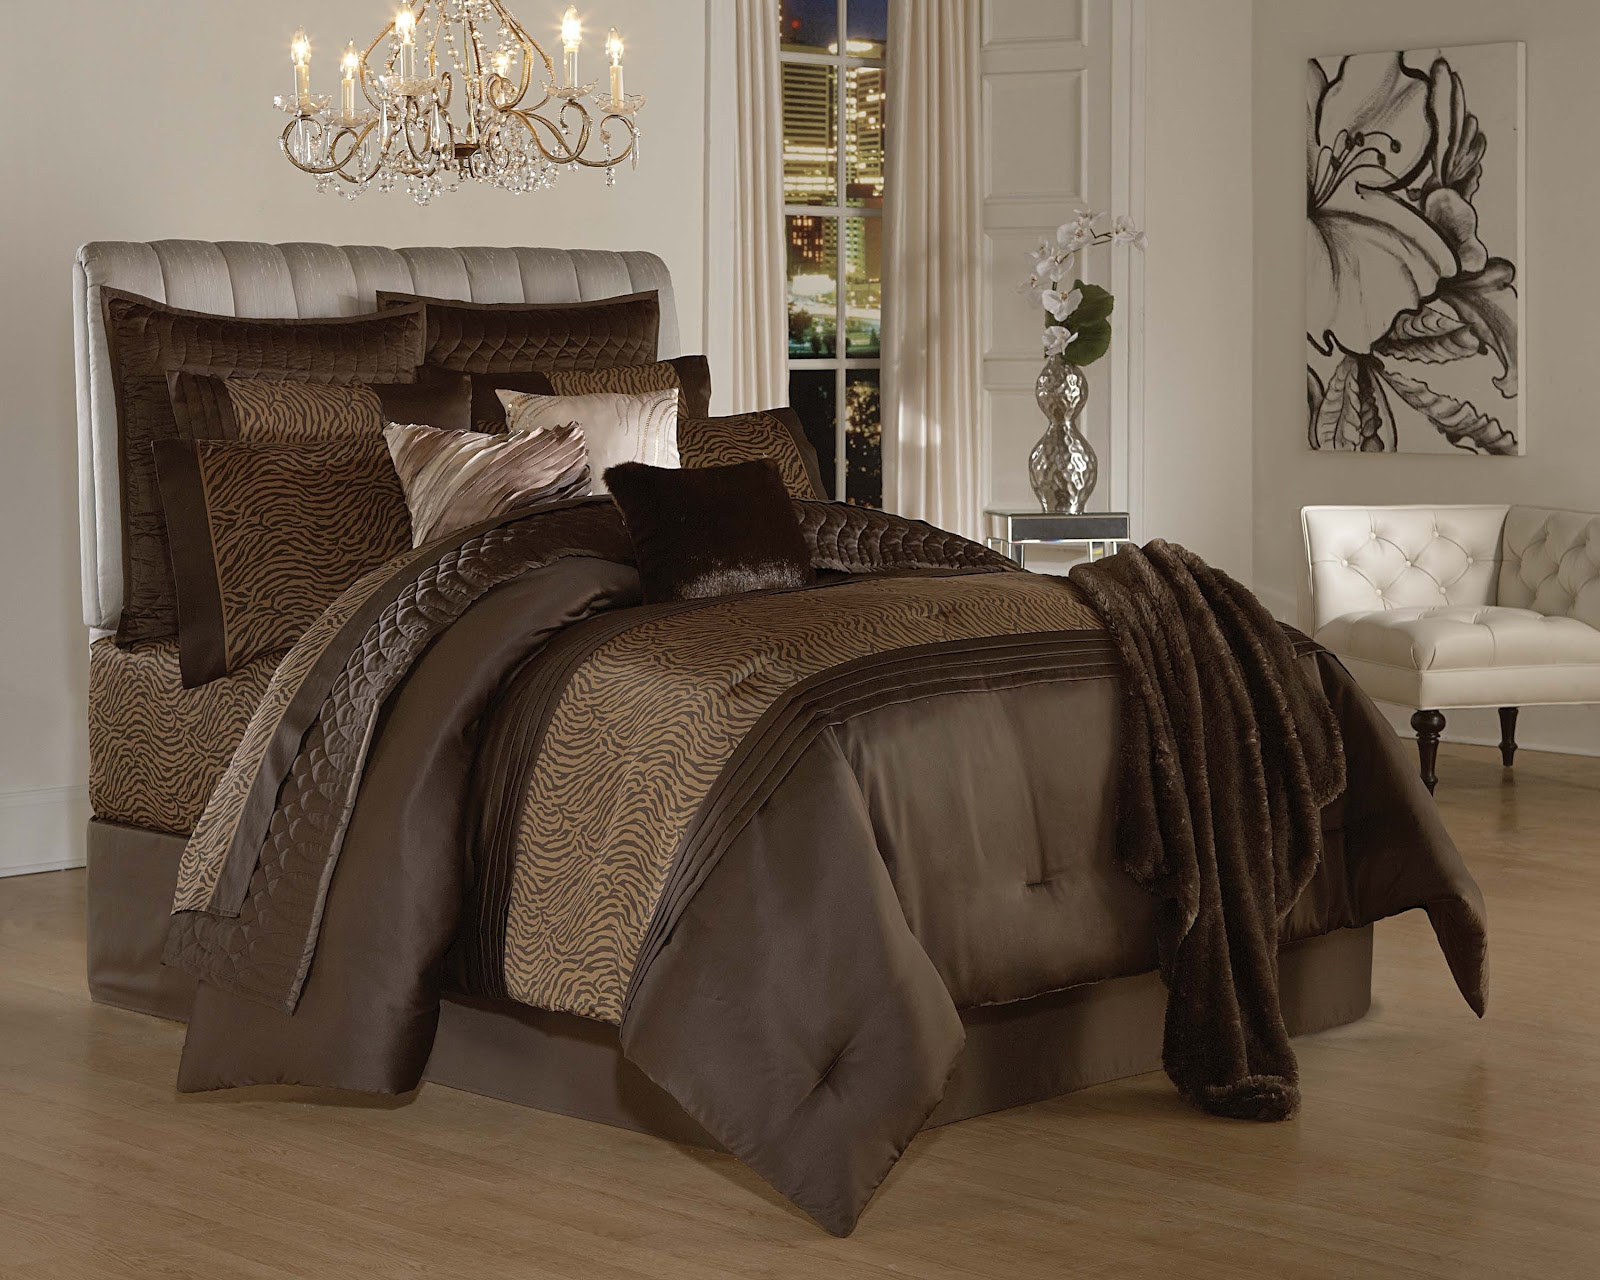 Everything She Wants Sleep With The Kardashians 39 Bedding